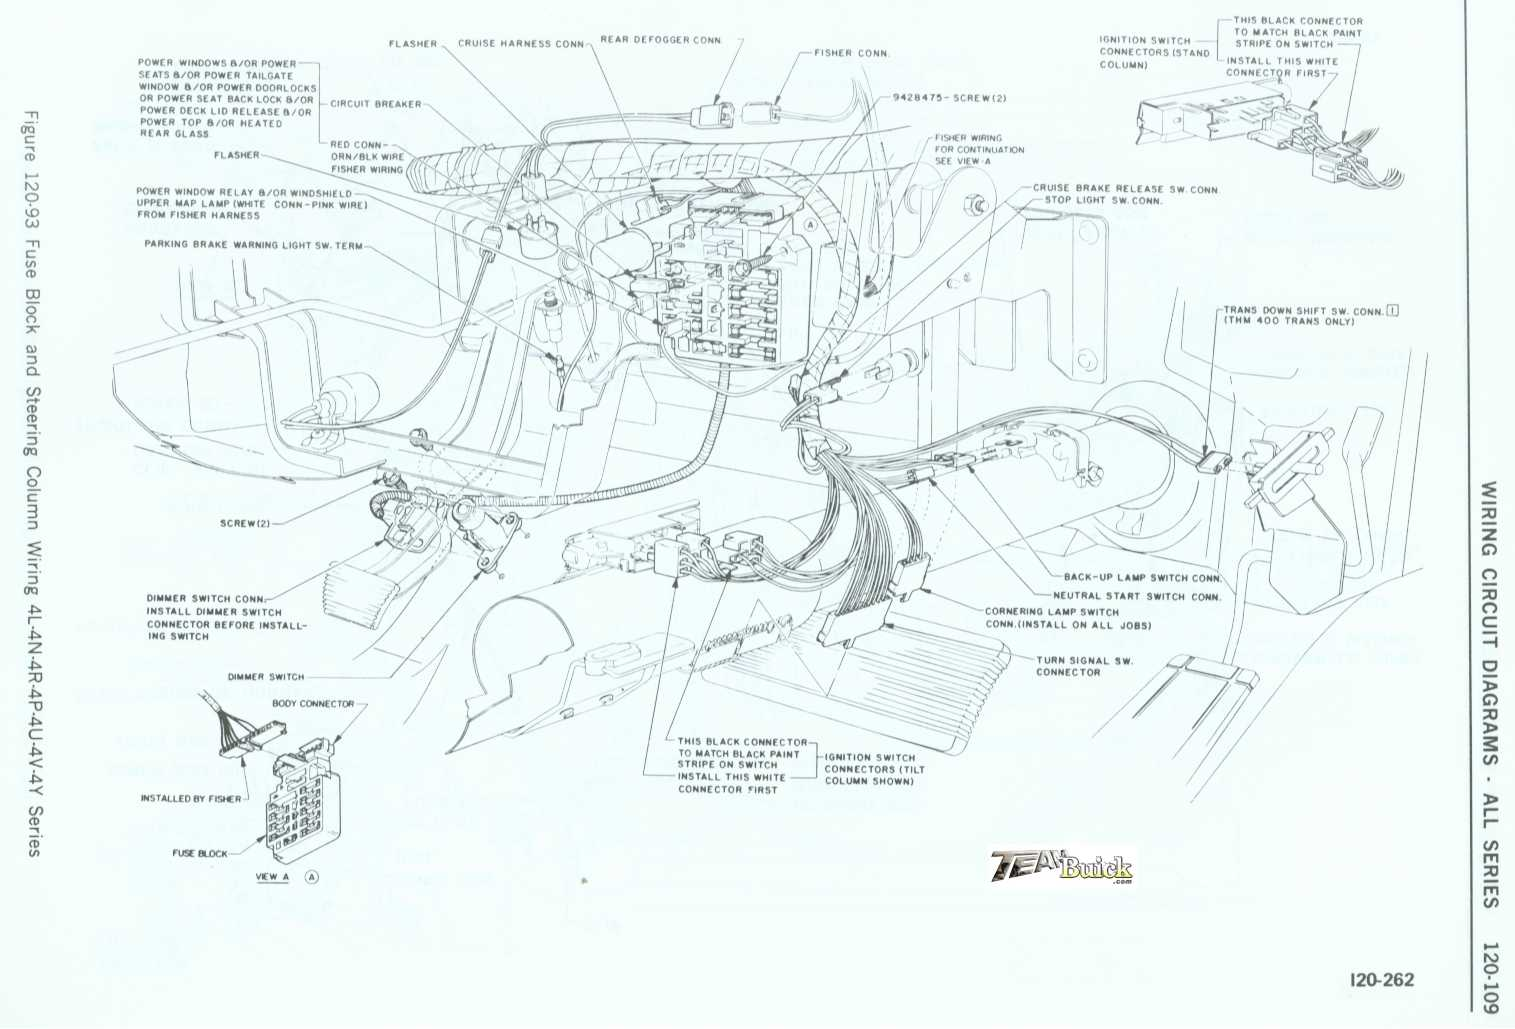 Arctic Cat Wildcat 650 Wiring Diagram Will Be A Thing 1989 Side By